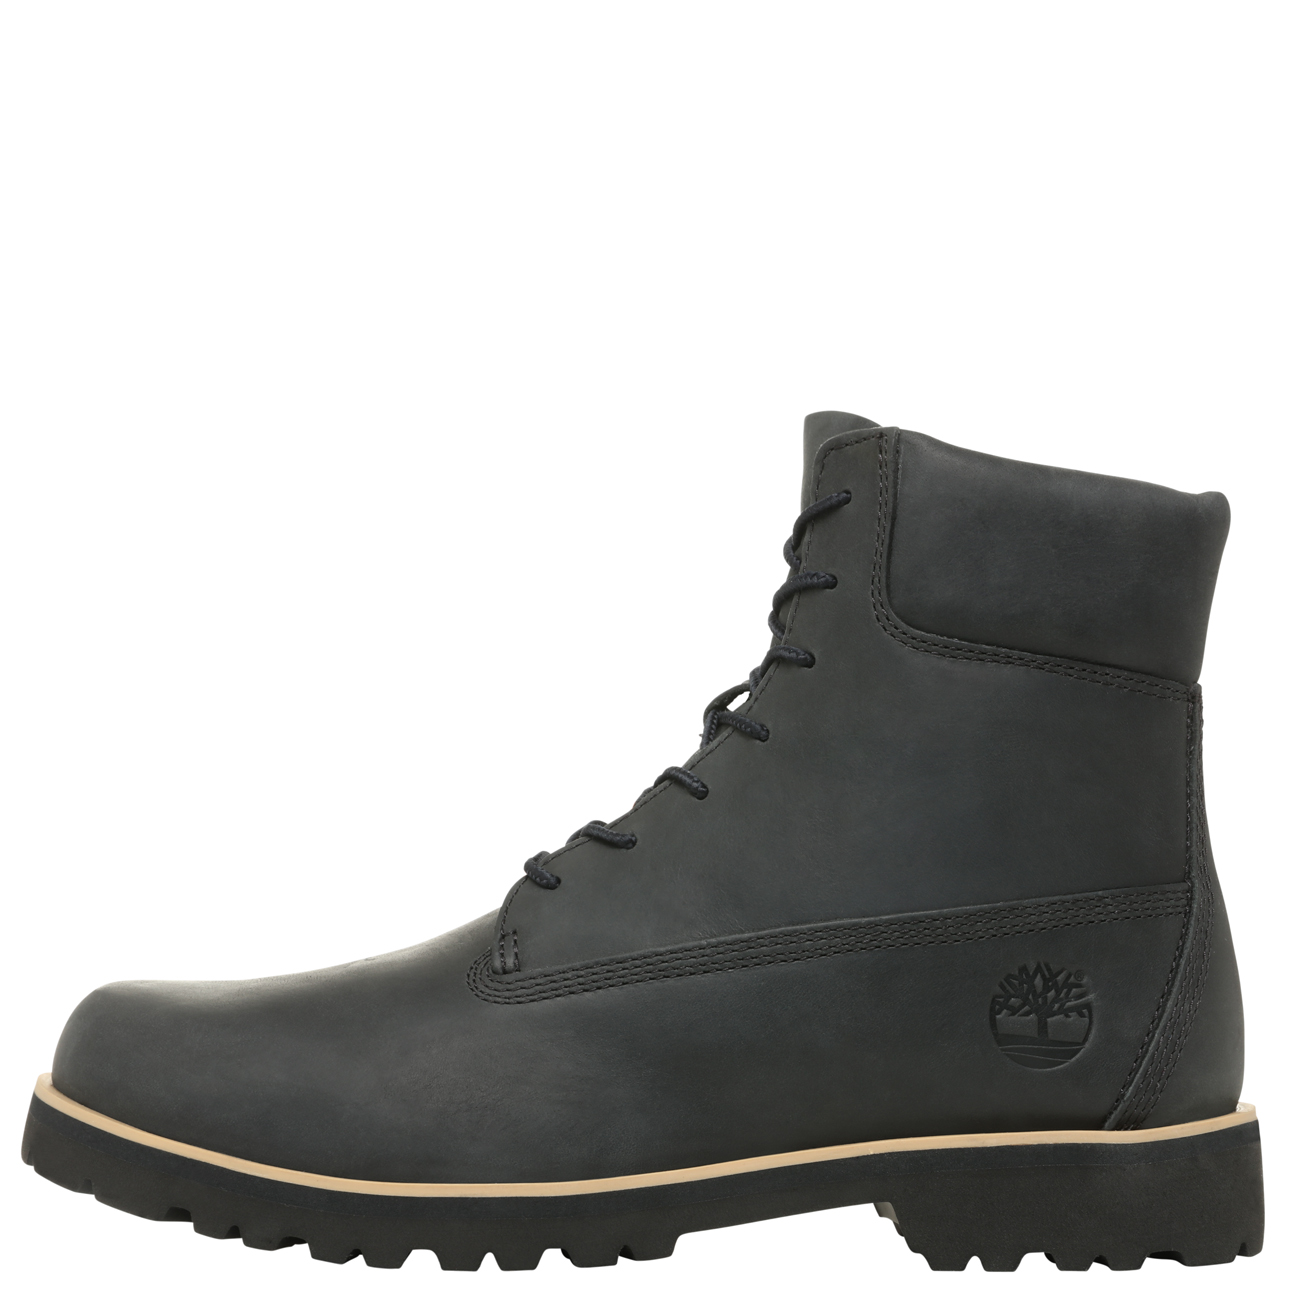 5a5aab84f45 Details about Mens Timberland Chilmark 6 Inch Boot Winter Nubuck Ankle  Walking Boots US 7-11